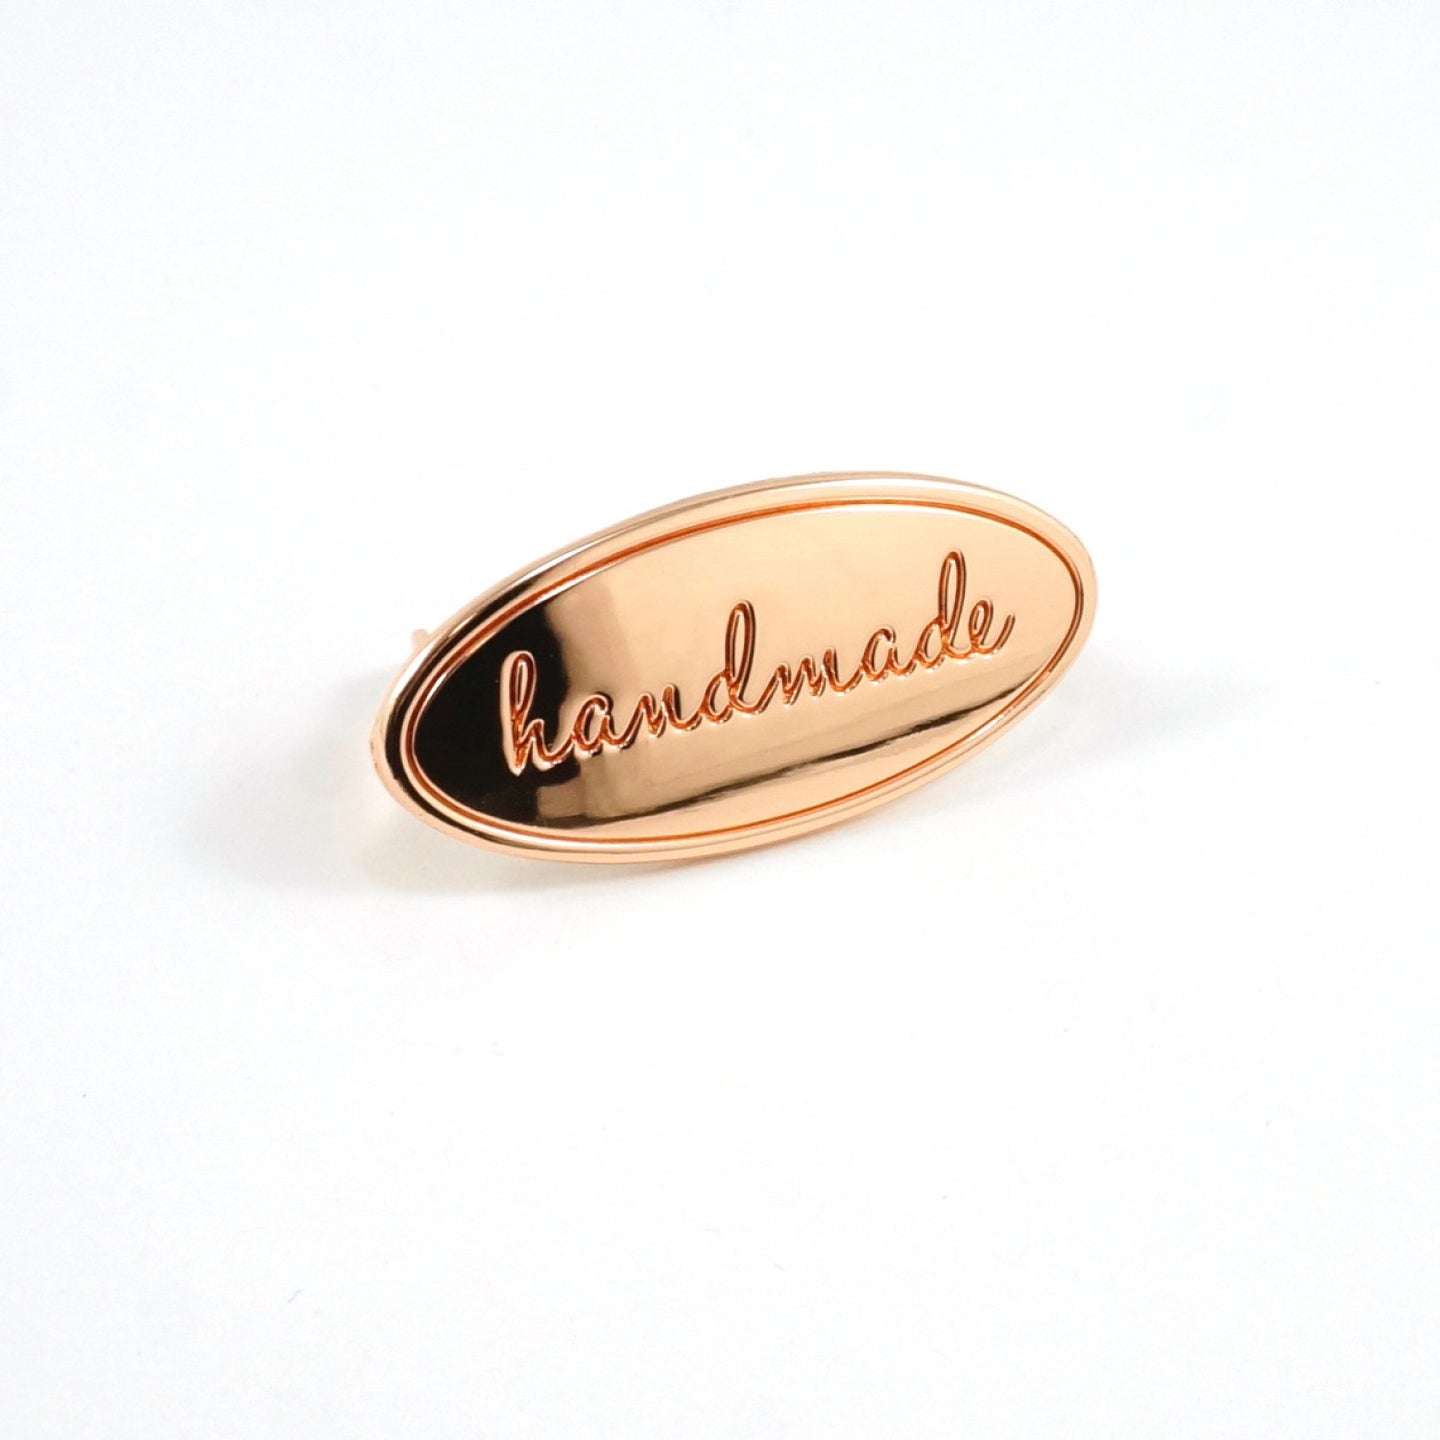 Metal Bag Label - Oval - Handmade in Copper